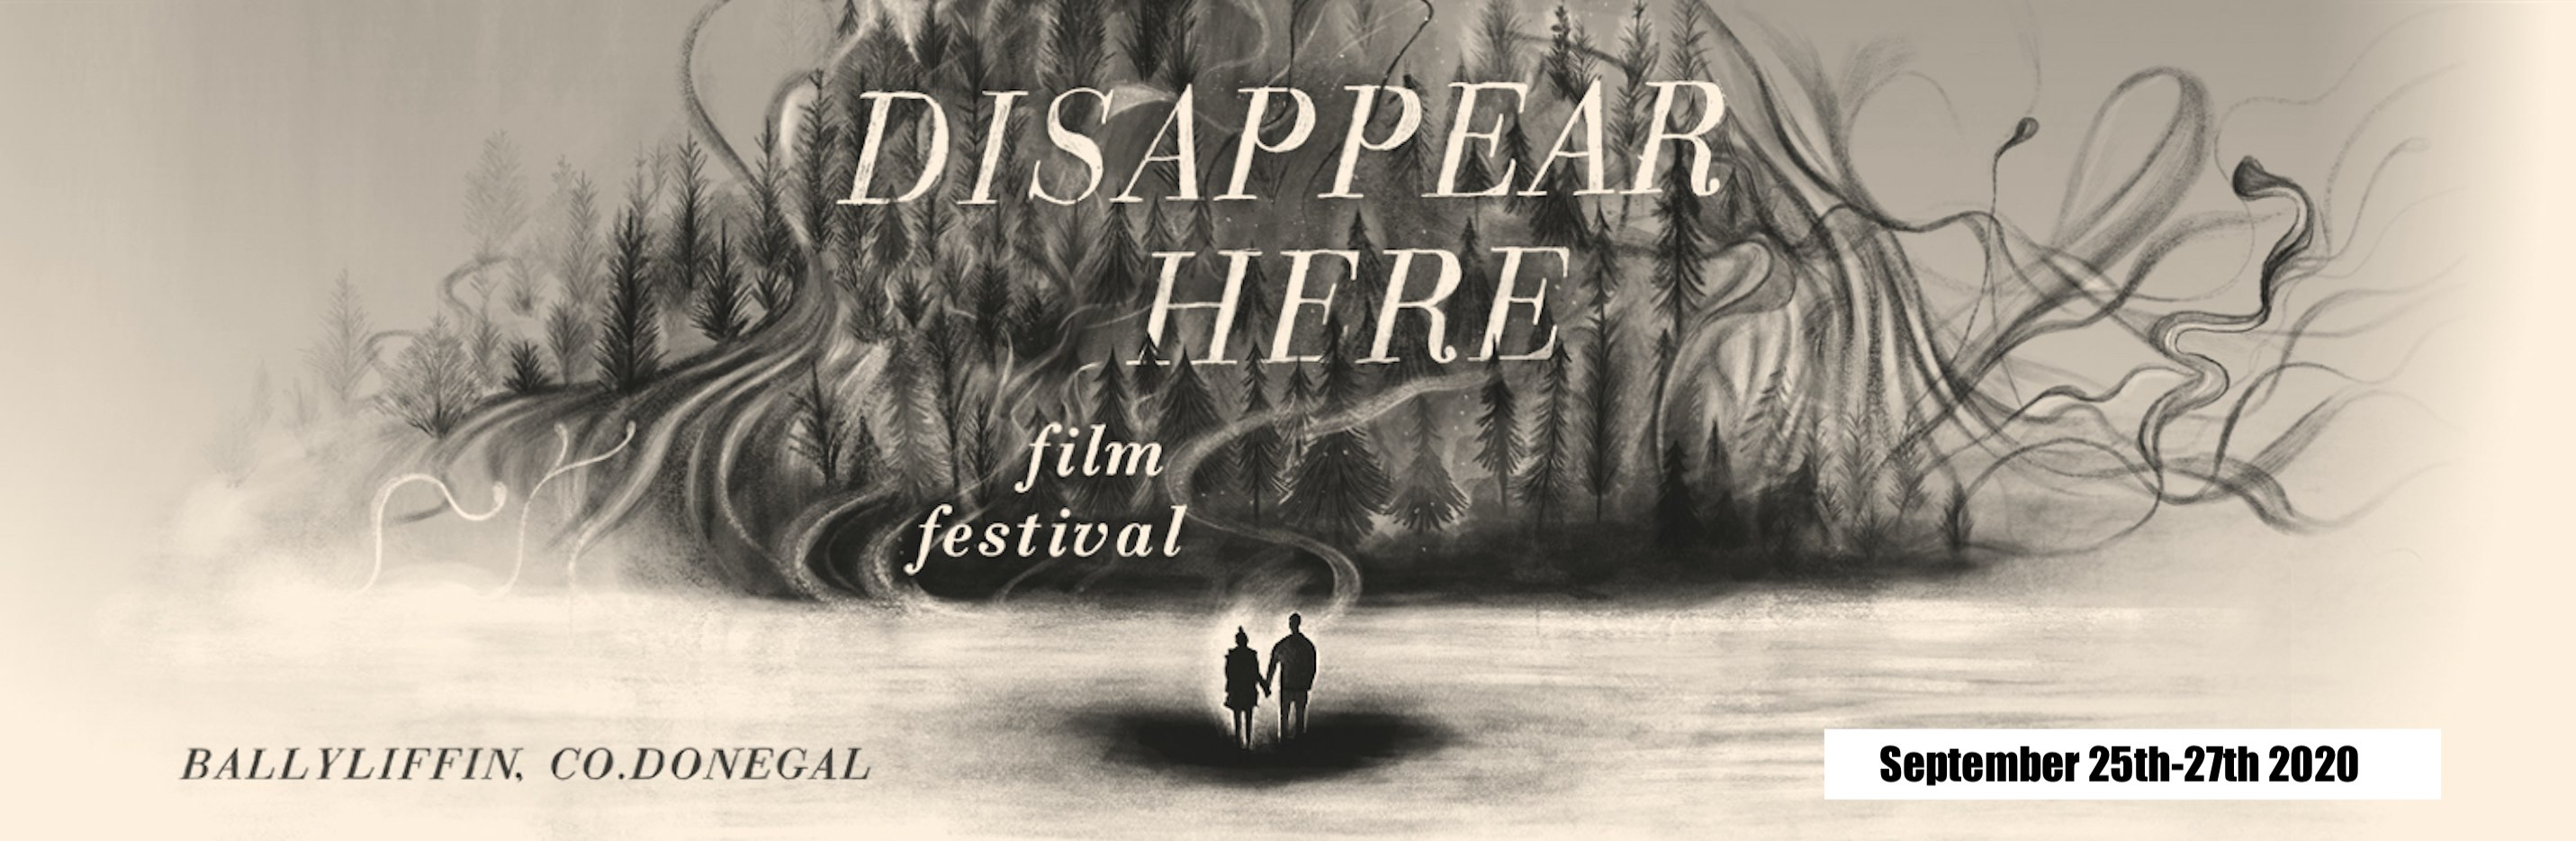 Disappear Here Film Festival 2020